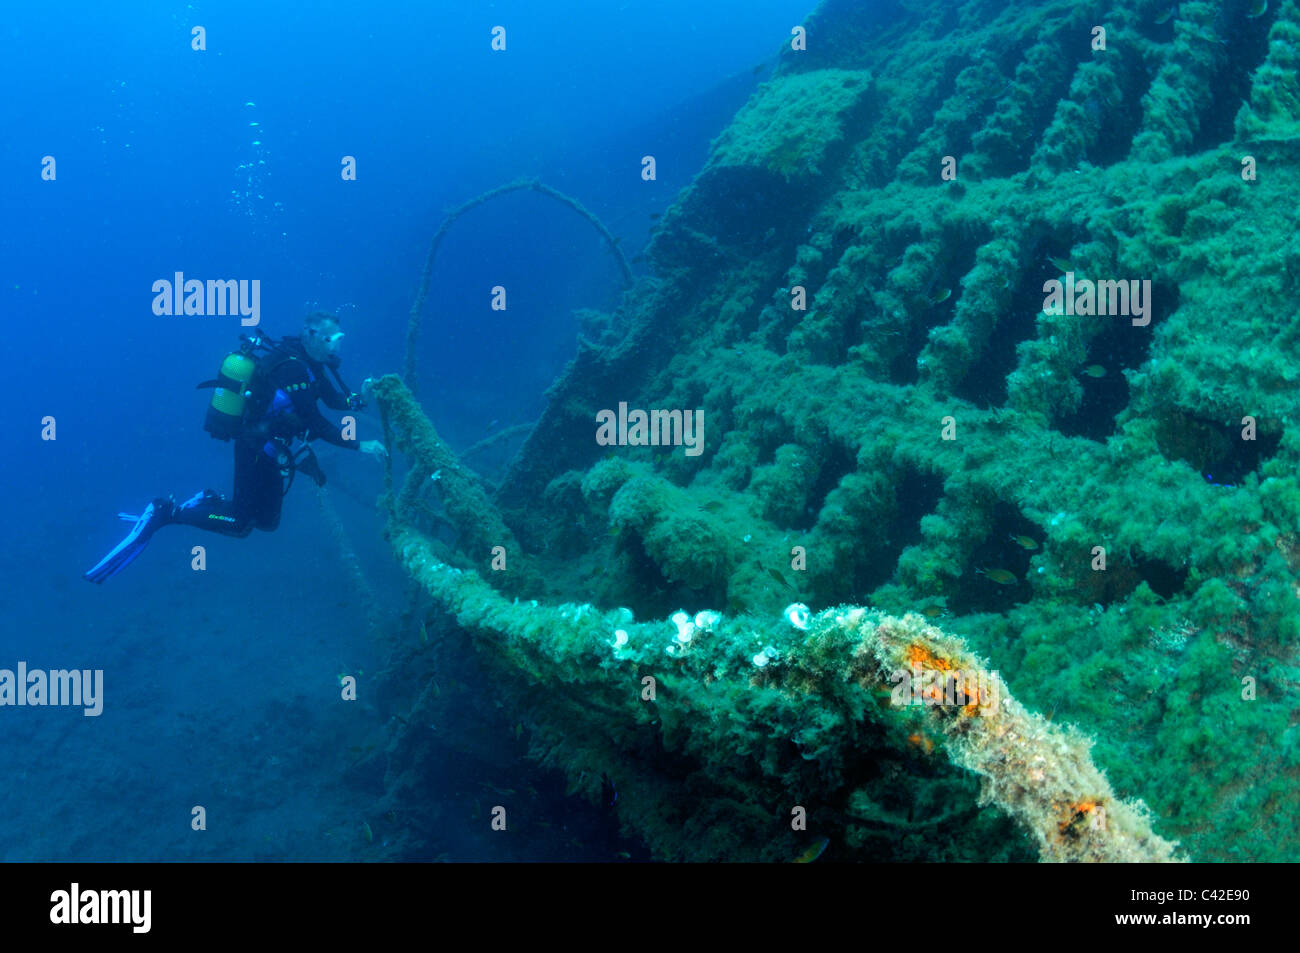 Scuba diver on The New Wreck off Puerto del Carmen, Lanzarote Stock Photo